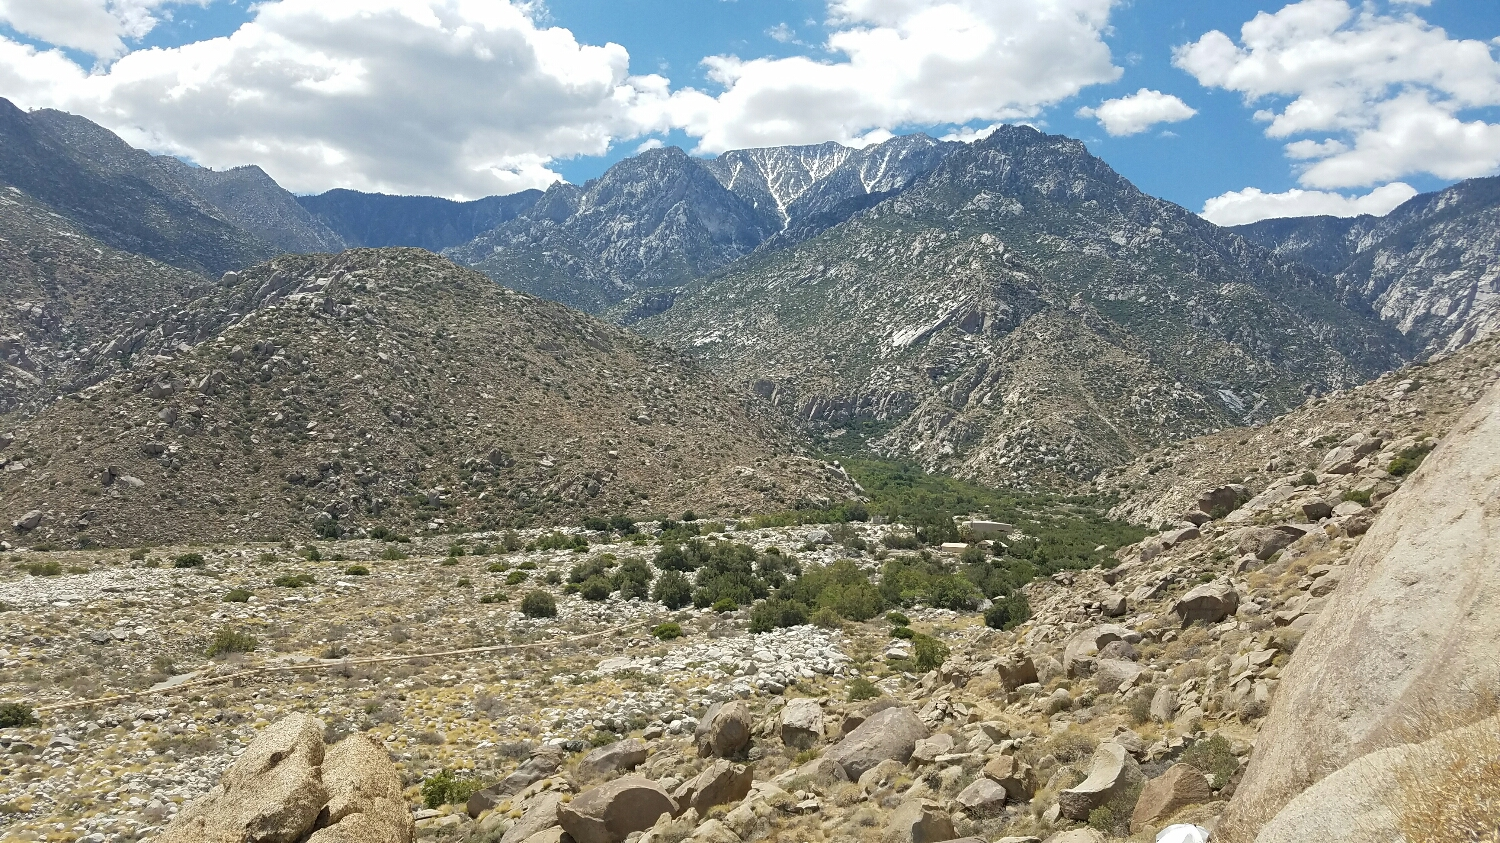 another look back at Mt. Jacinto. I can hardly believe we were just at the peak the day before.